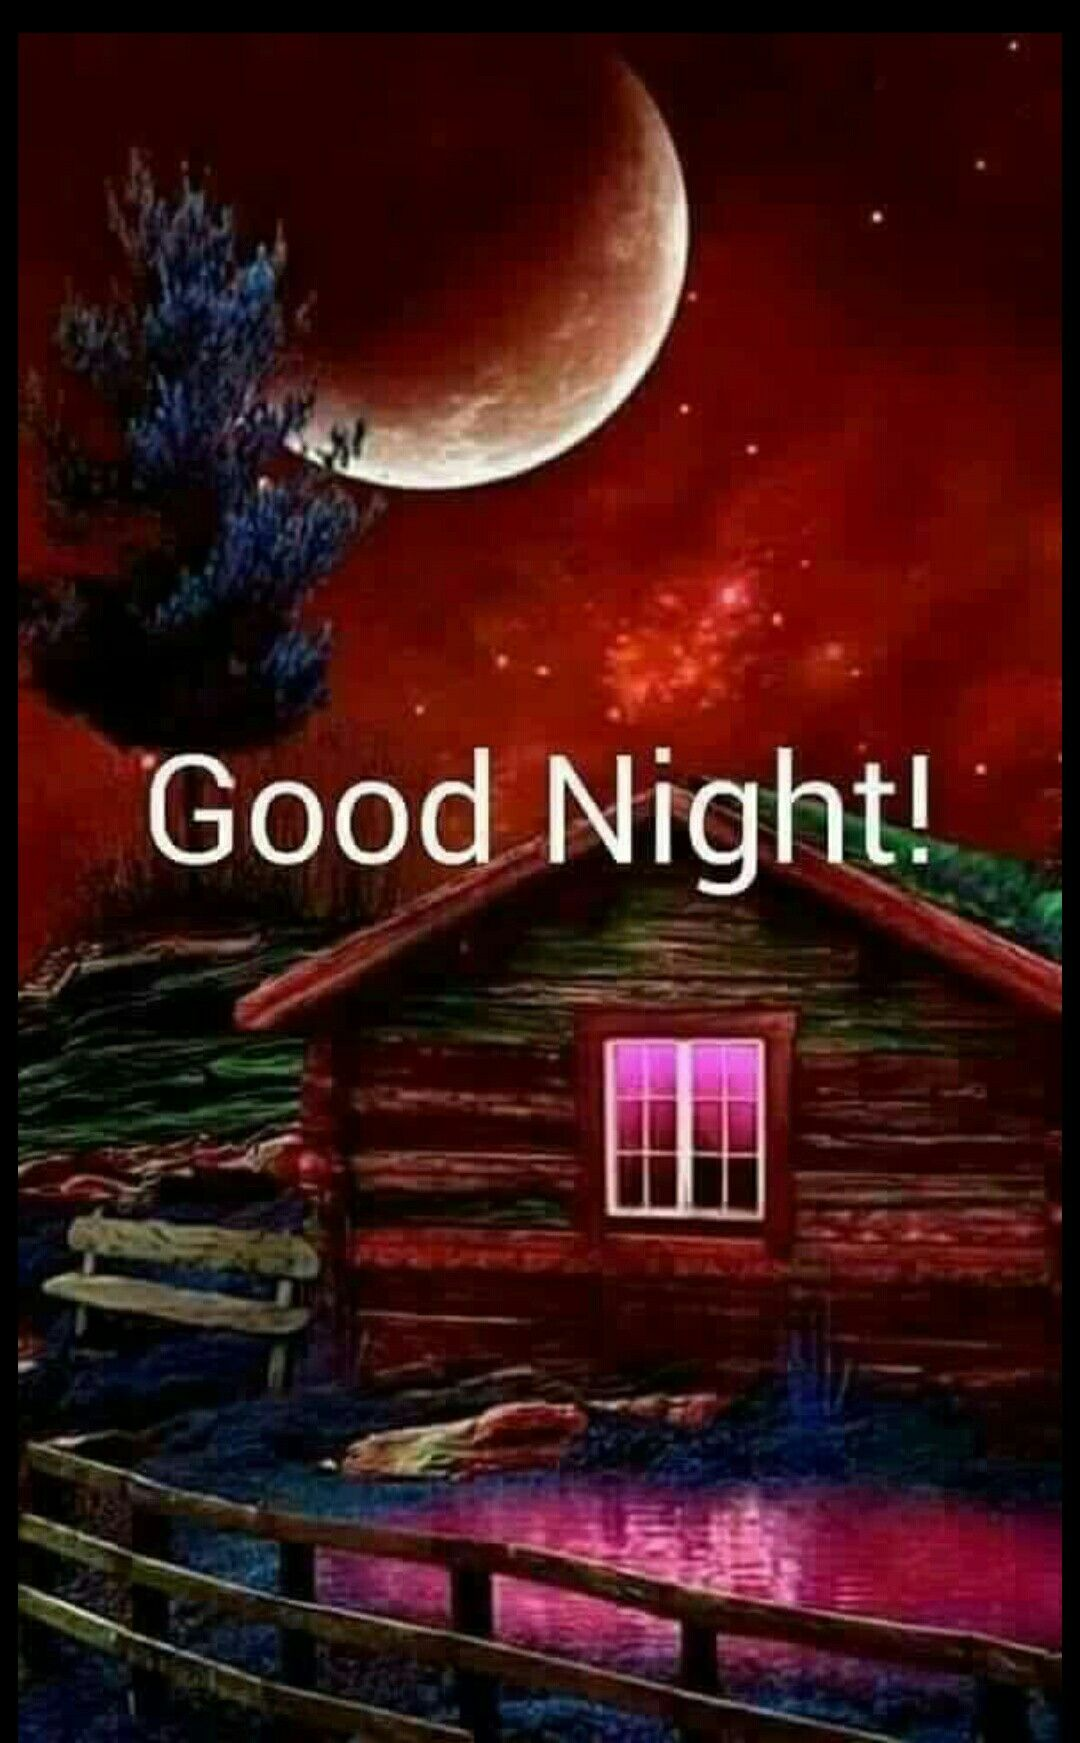 Goodnight Baby Missing You Hope You Sleep Well I Love You Good Night Greetings Good Night Thoughts Good Night